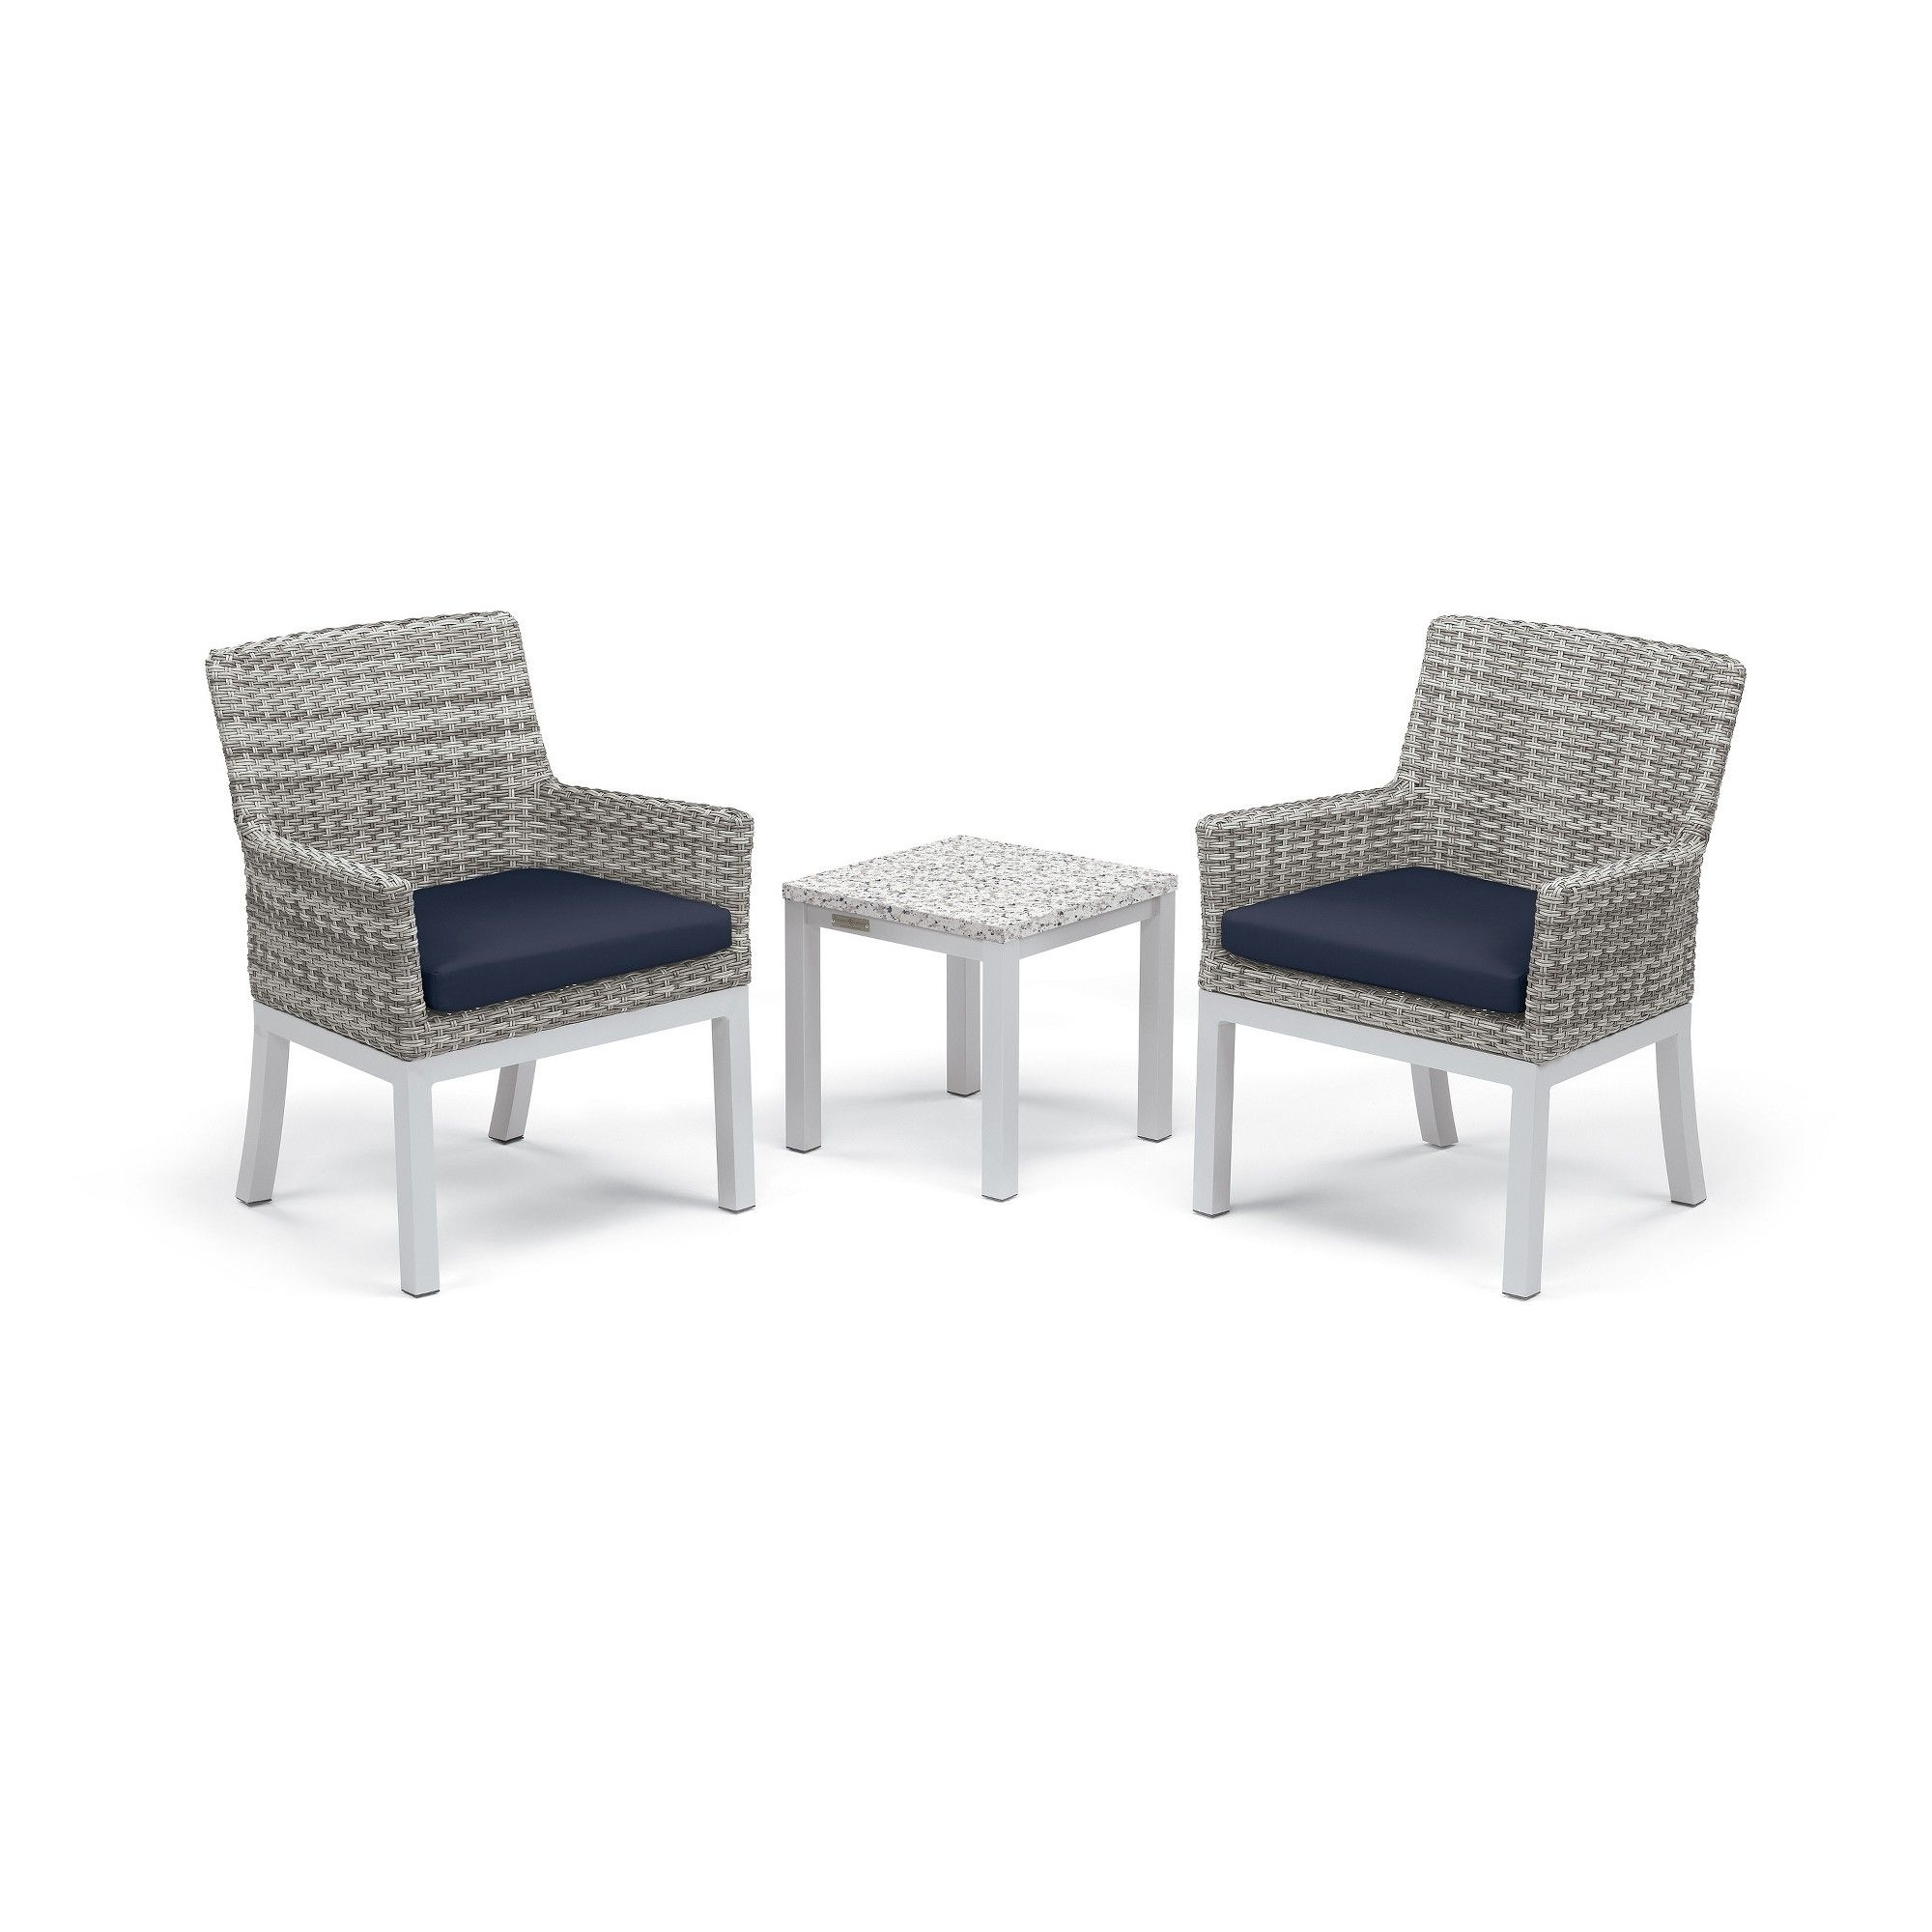 Preferred Patio Conversation Sets With Blue Cushions With Regard To Travira 3Pc Conversation Set With End Table Powder Coated Aluminum (View 17 of 20)